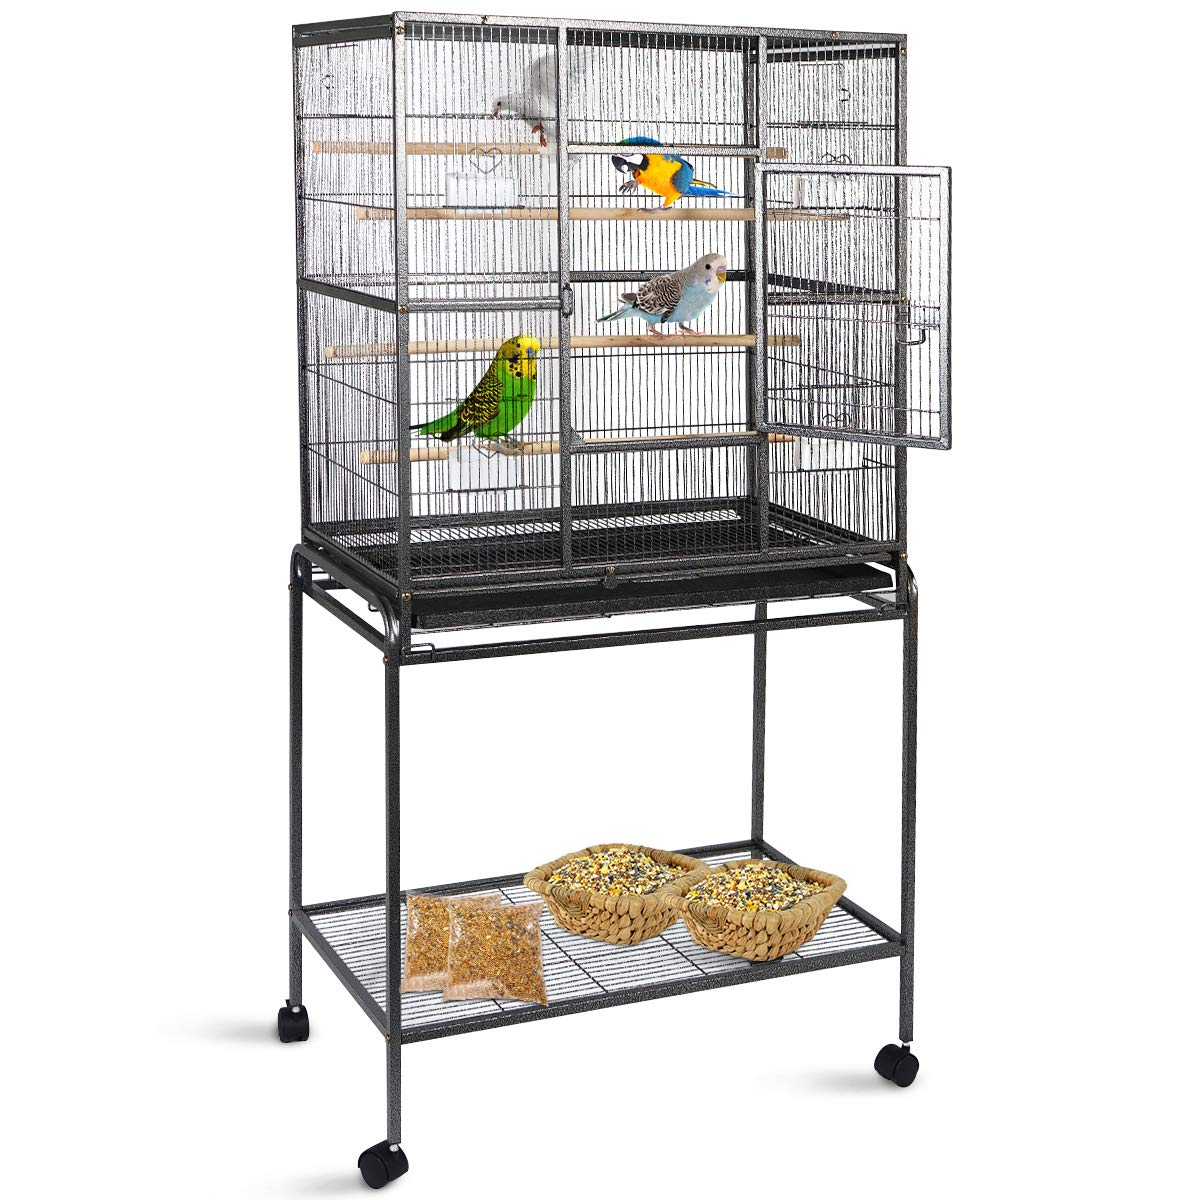 Gaintex 63'' Rolling Bird Cage with Stand & Storage Shelf Large Wrought Iron Cage for Cockatiel Conure Parakeet Lovebird Canary Finch Budgie Pet House 4 Feeding Doors and Cups by Giantex